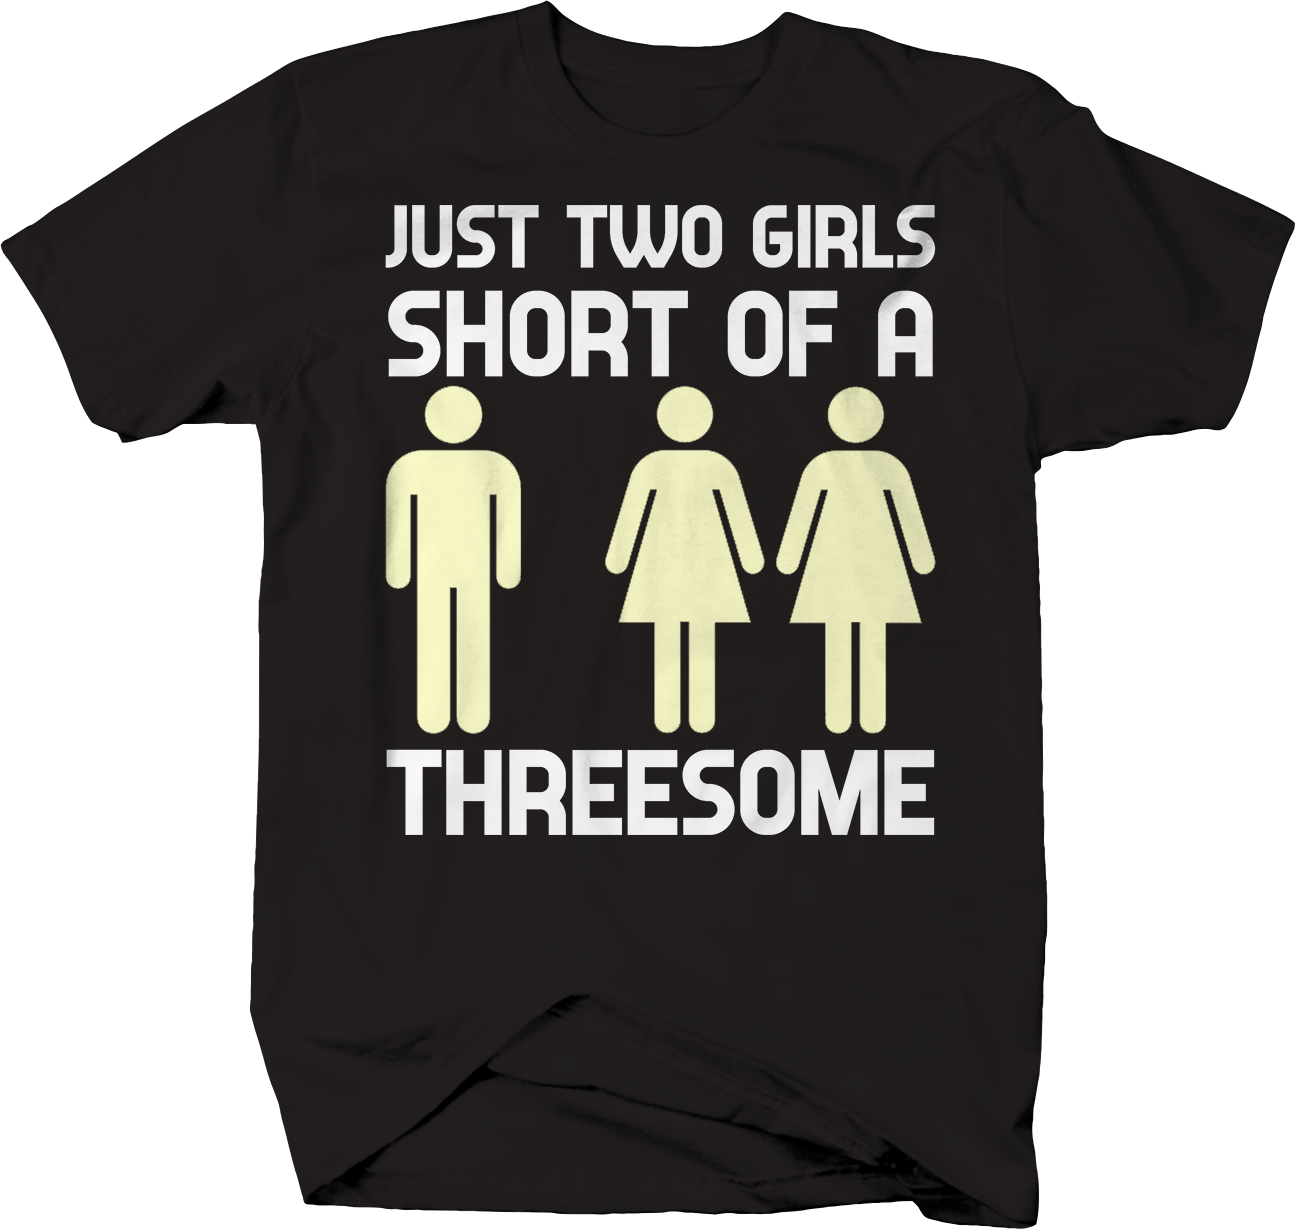 Just Two Girls Short Of A Threesome Funny Sexy T-Shirt - T-Shirts, Tank Tops-2257